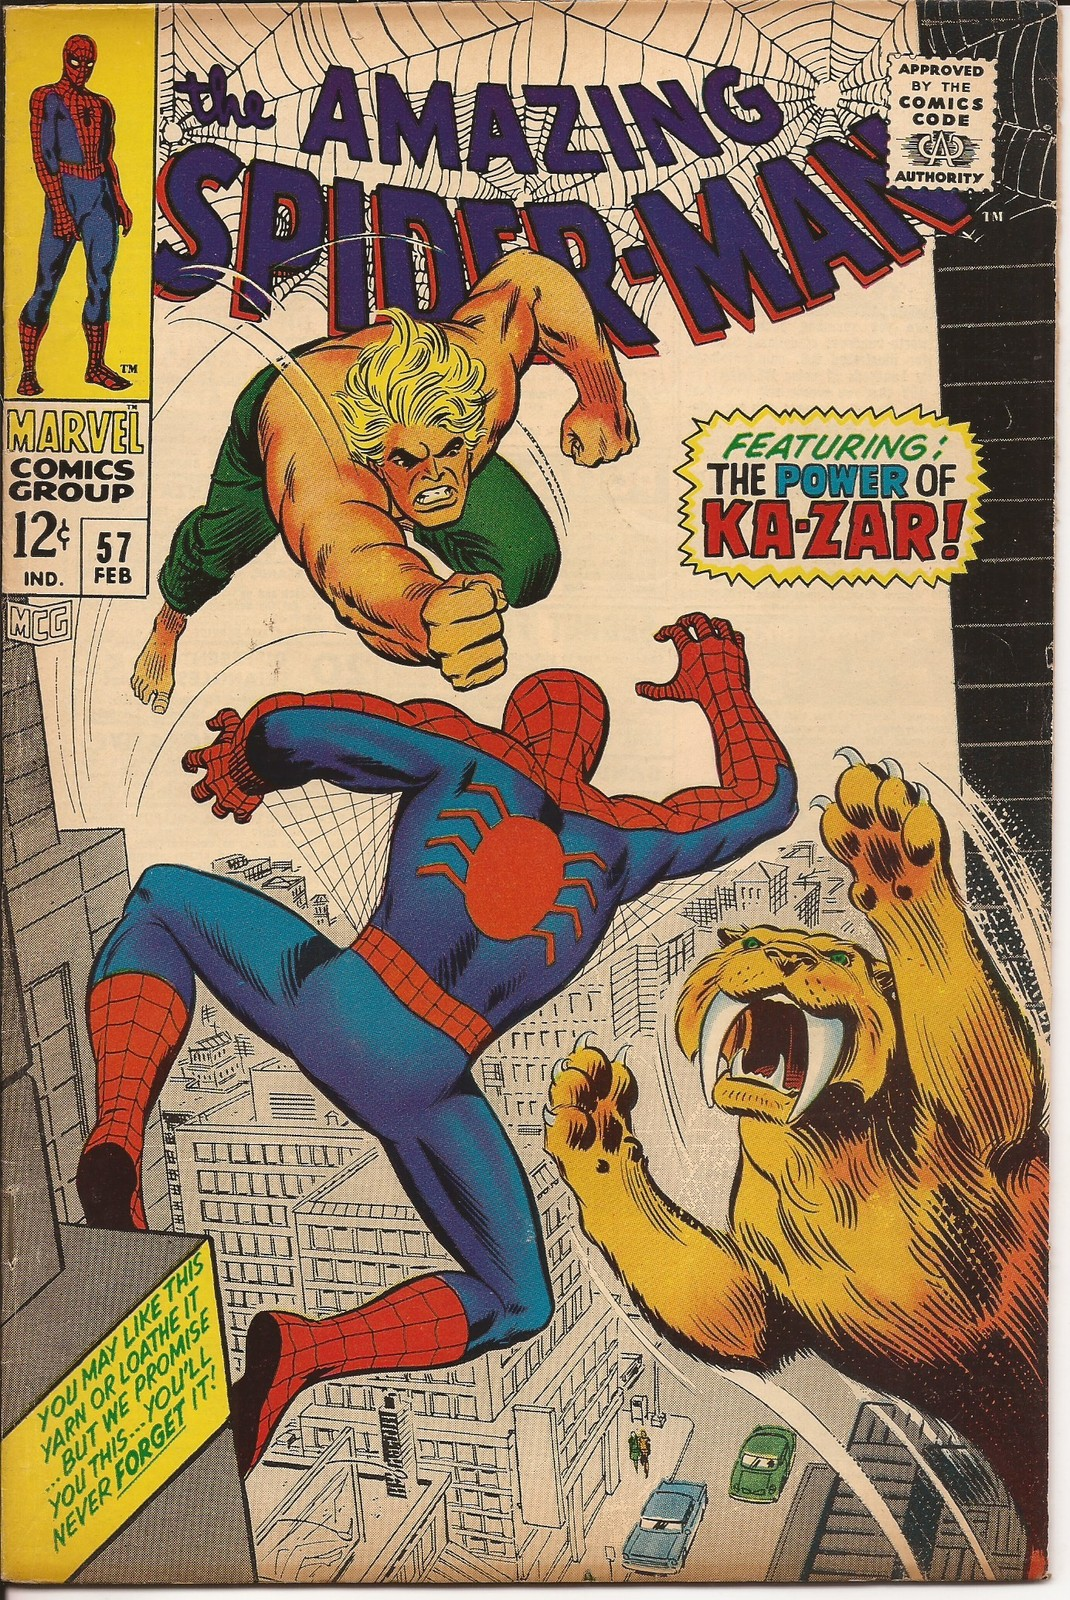 Marvel The Amazing Spider-Man #57 The Power Of Ka-zar Aunt May Peter Parker